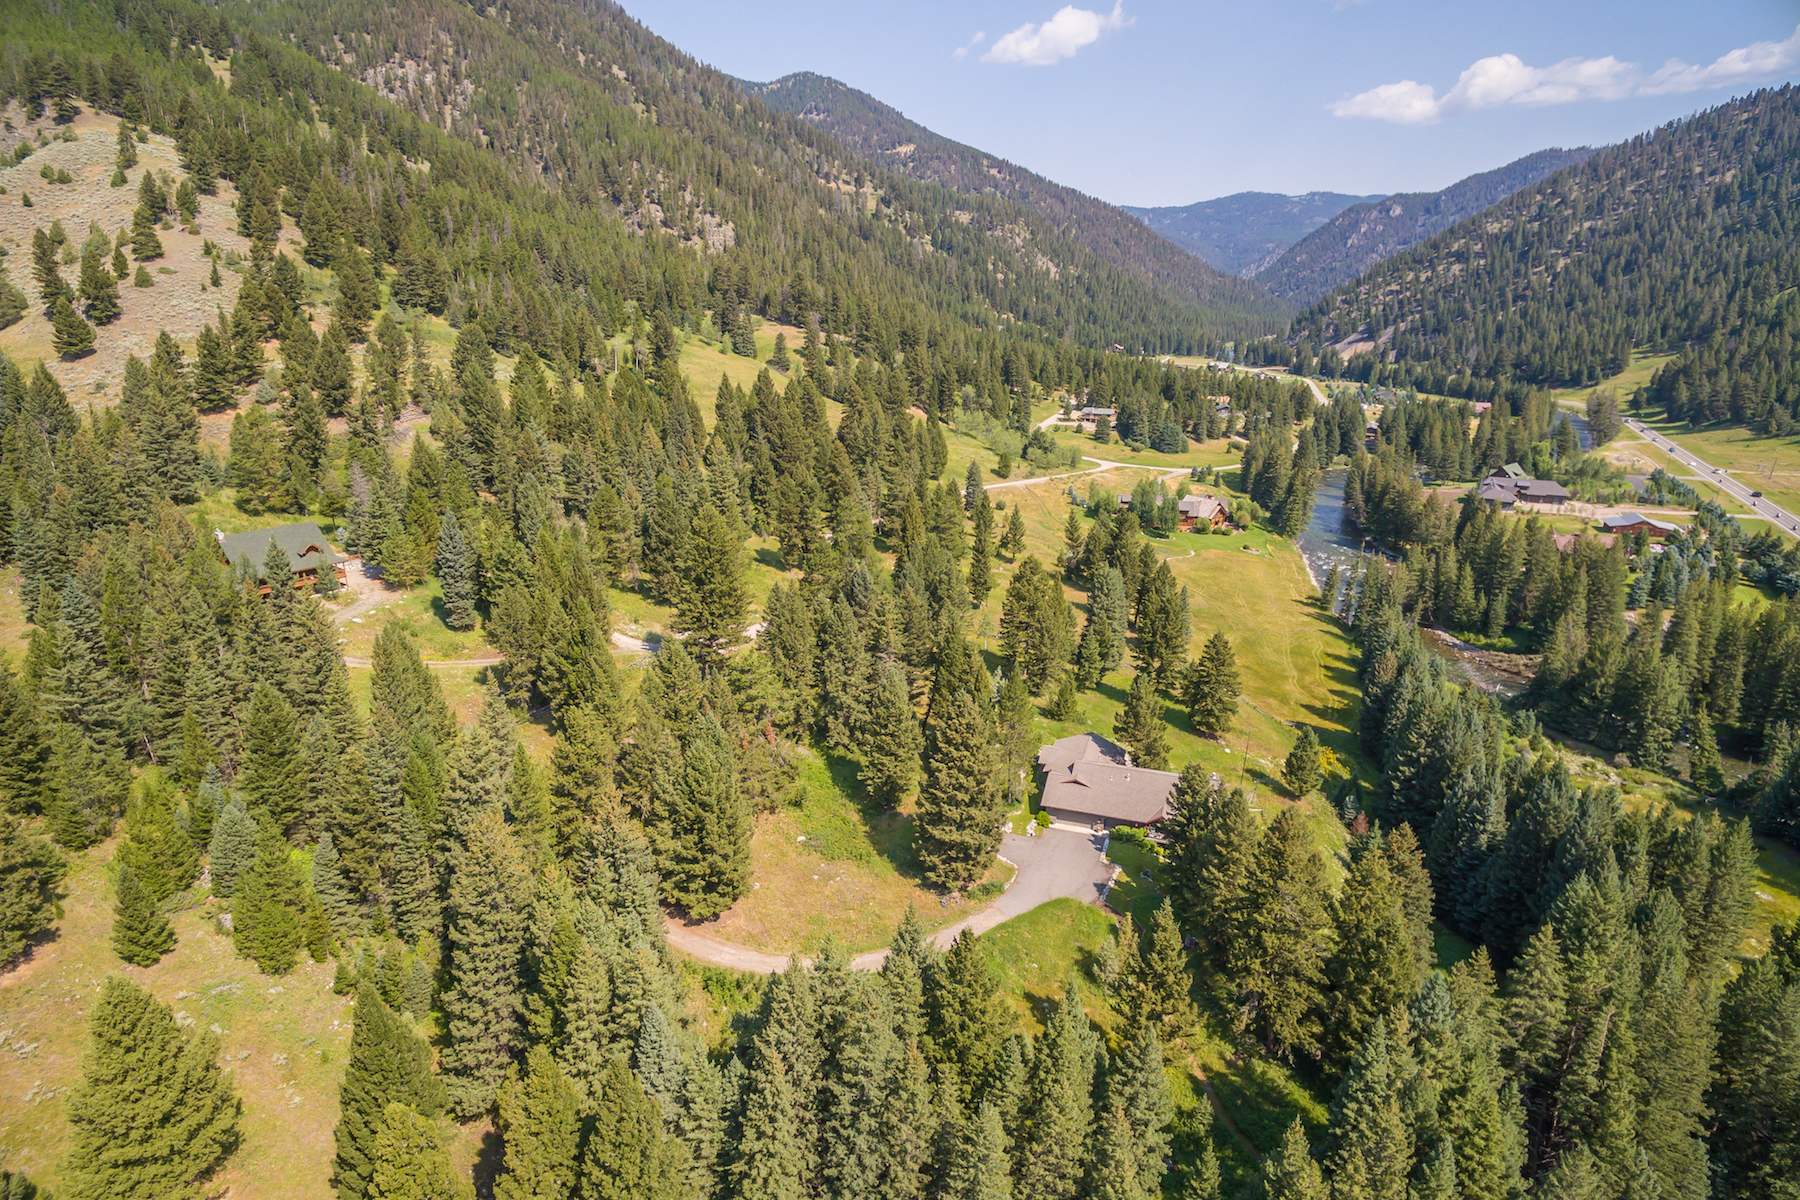 Villa per Vendita alle ore Karst Creek Home 270 Karst Creek Lane, Big Sky, Montana, 59716 Stati Uniti